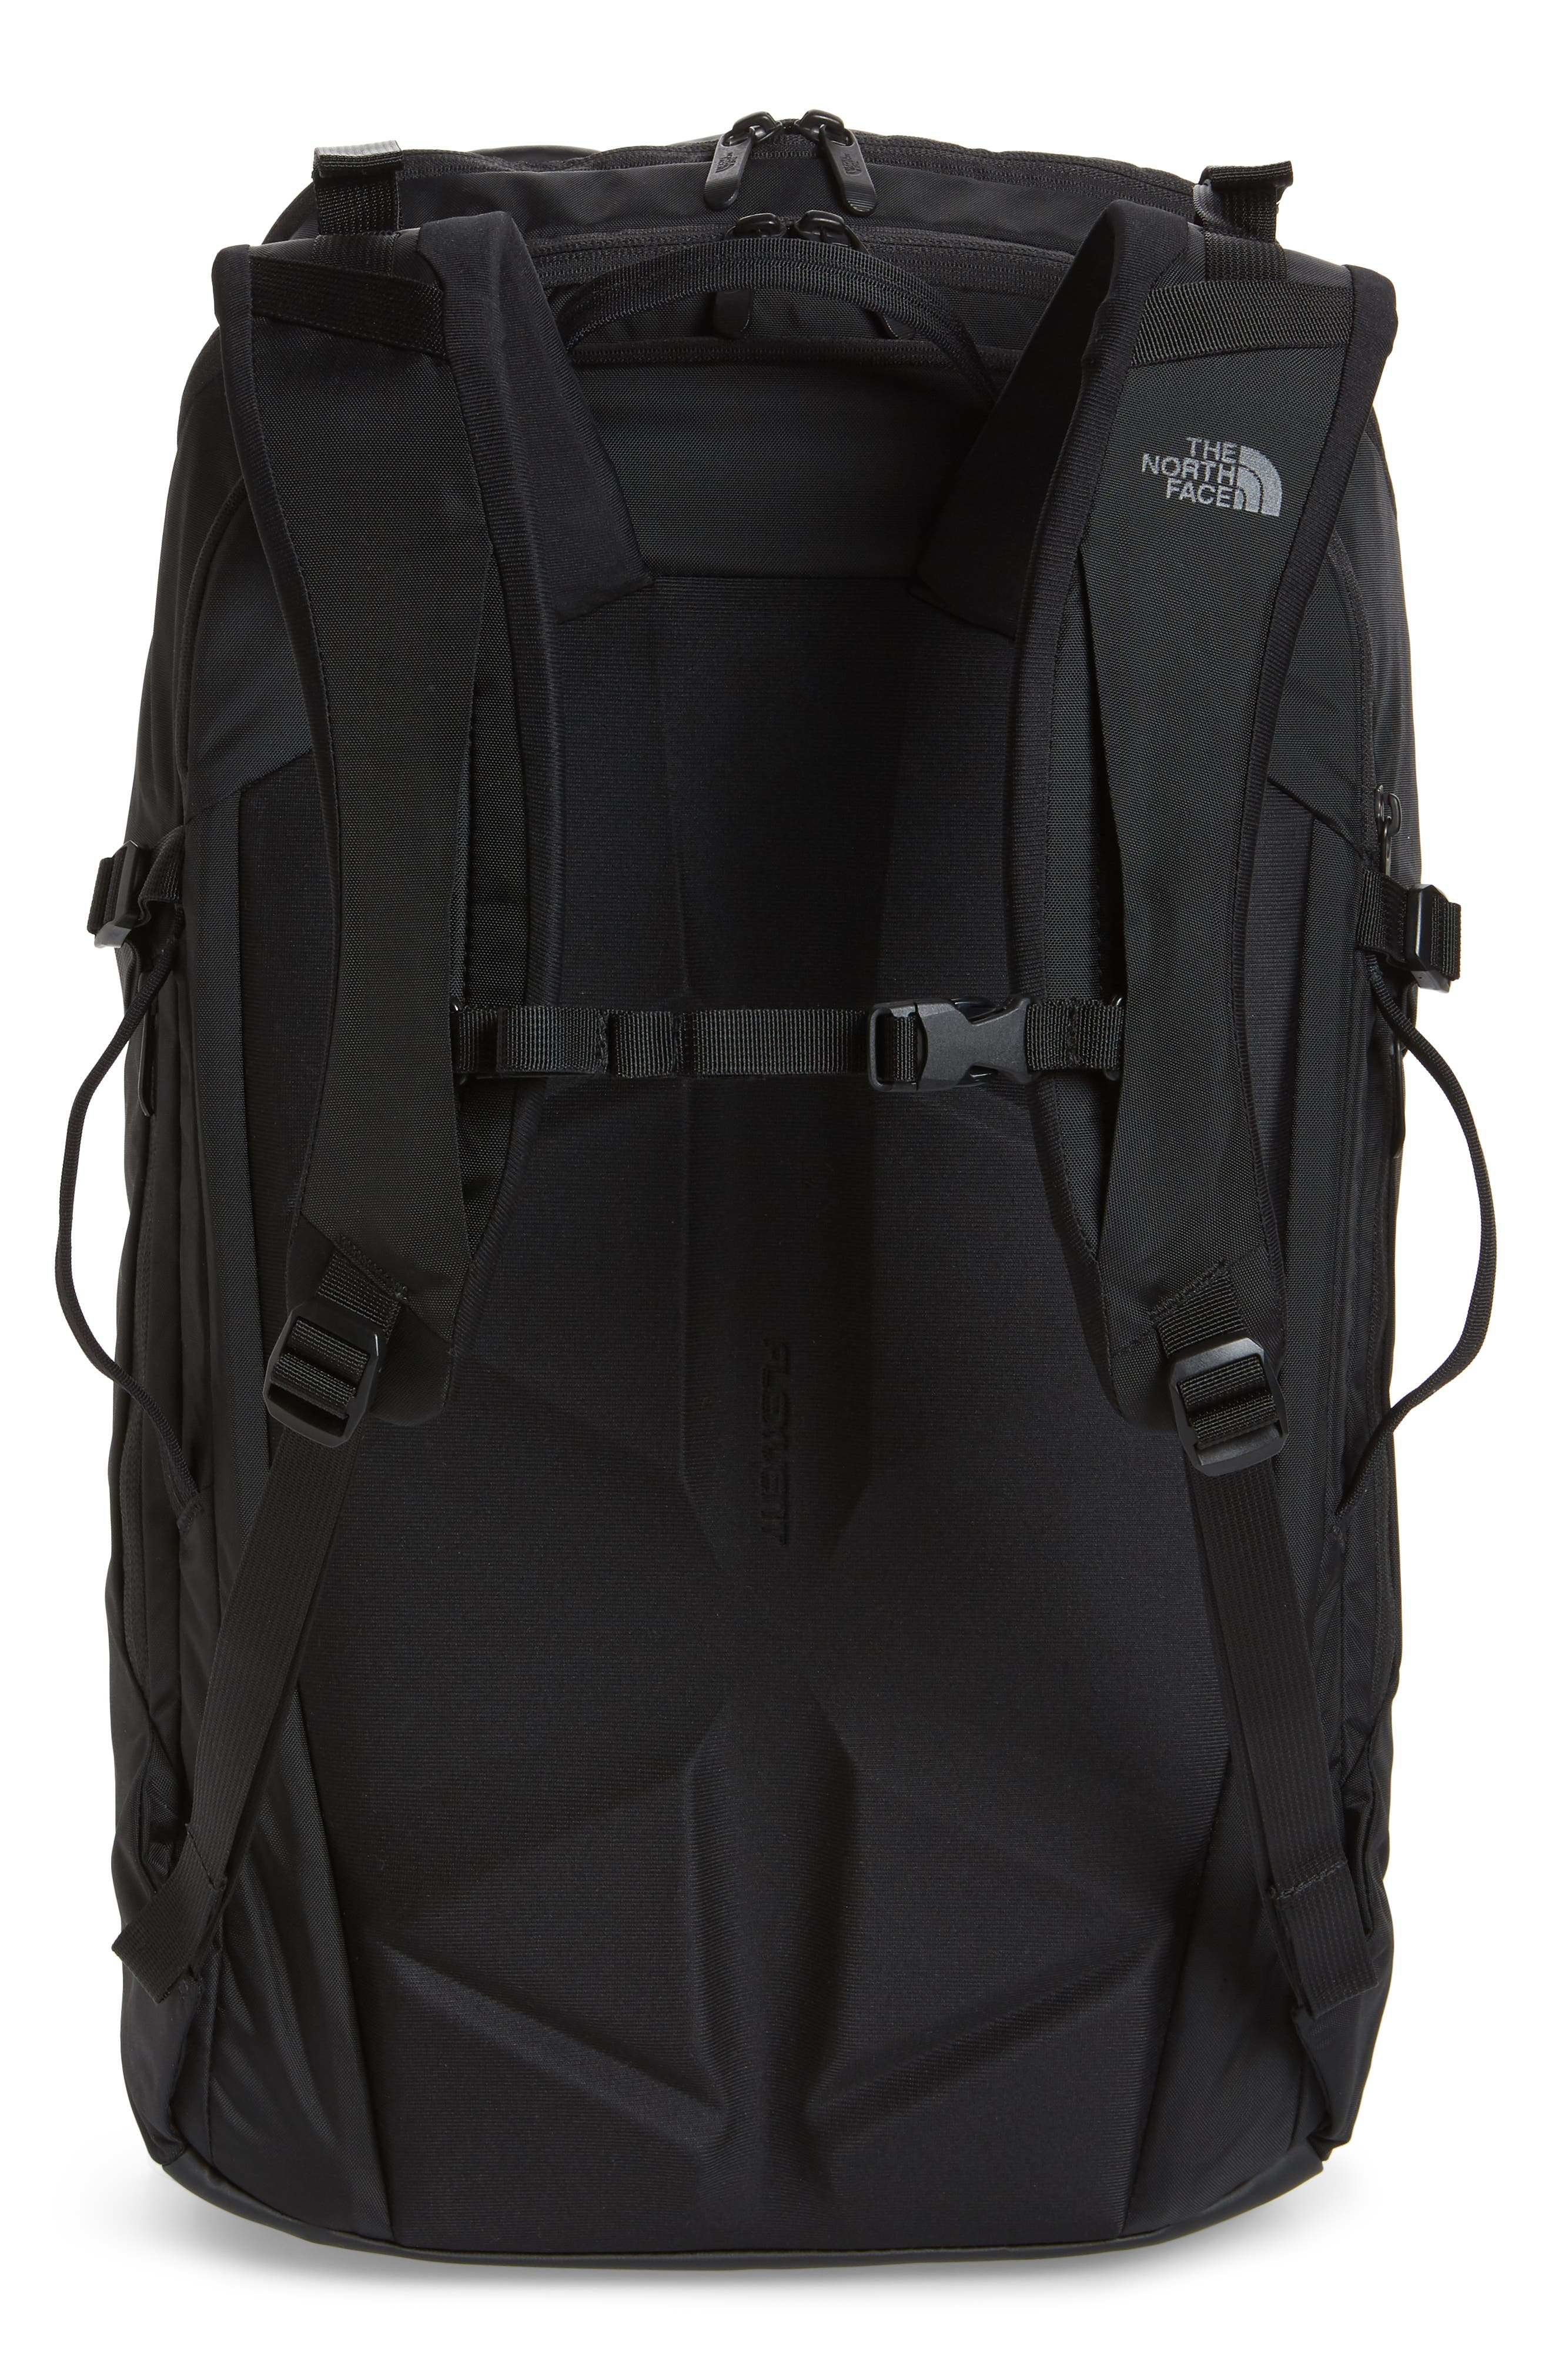 THE NORTH FACE, Kabig Backpack, Alternate thumbnail 3, color, 001